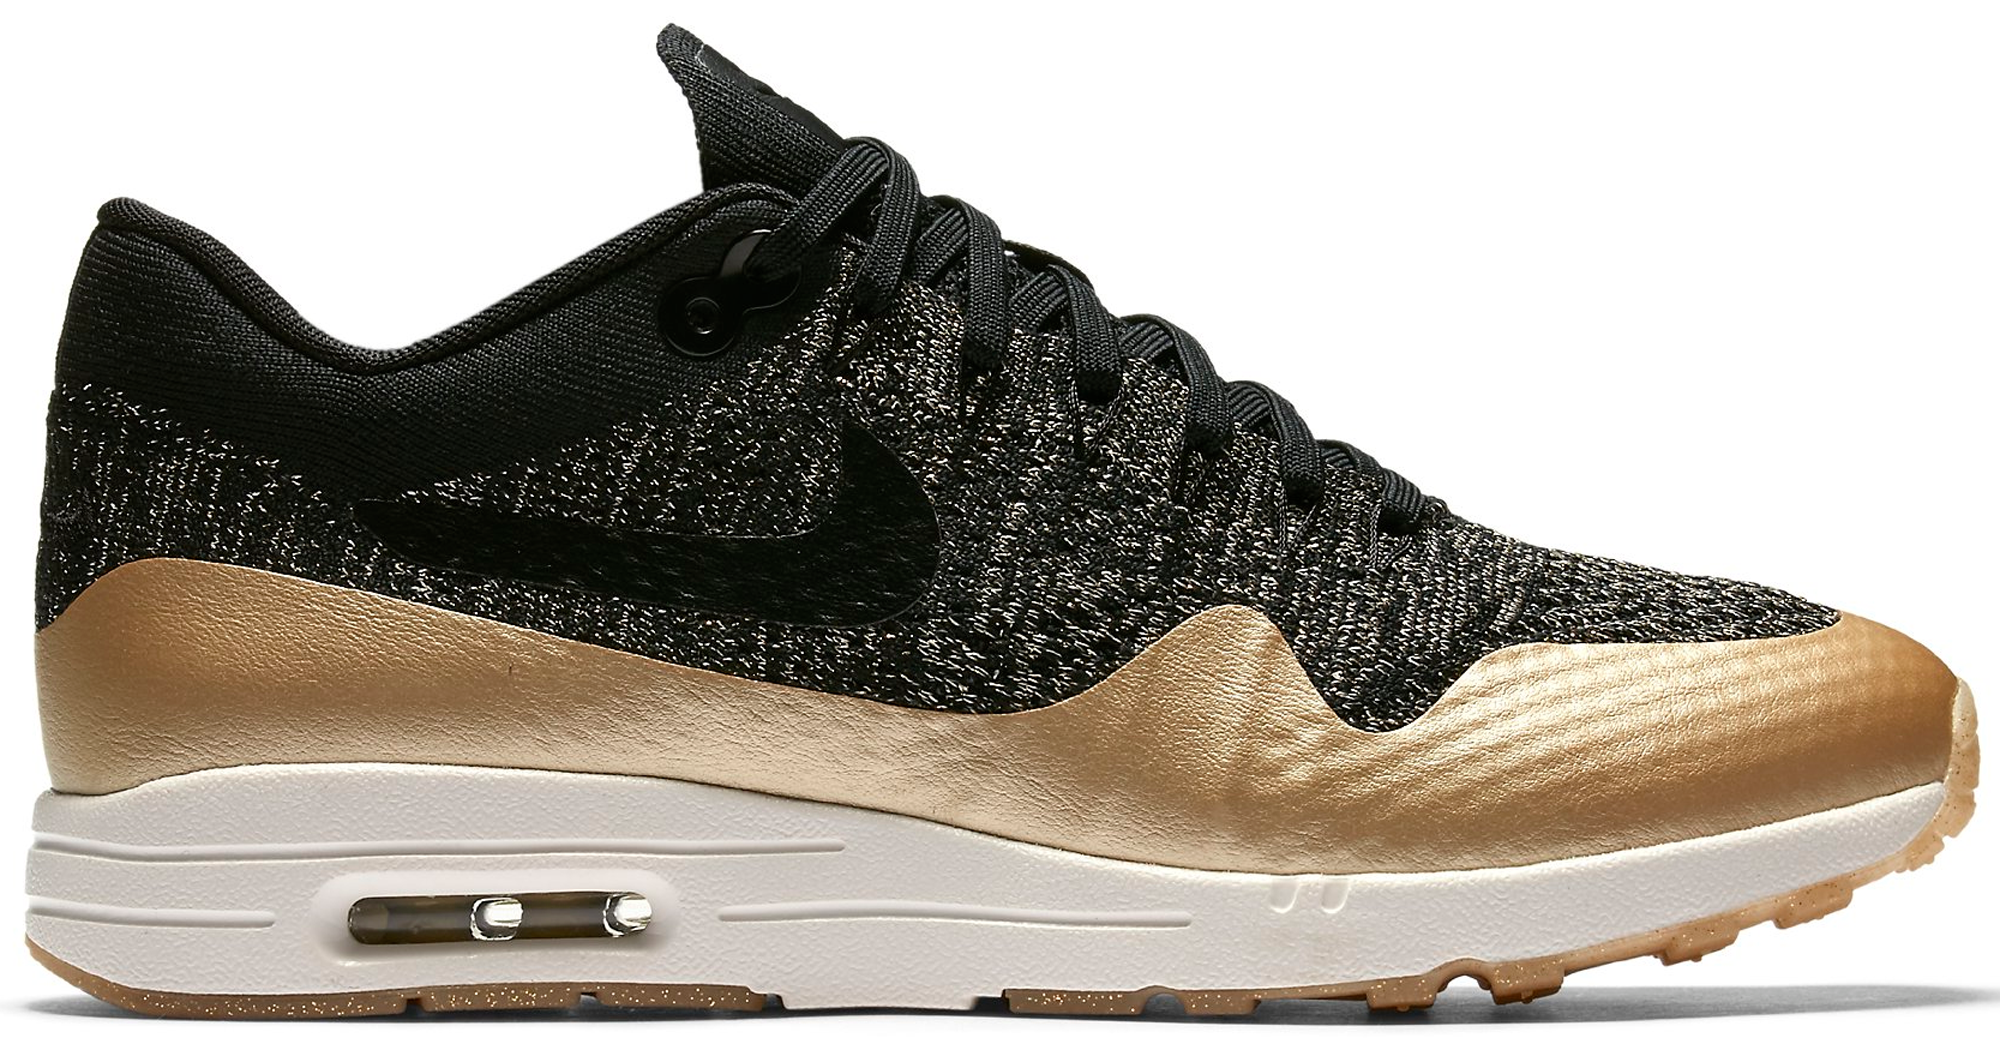 Nike 1 Ultra w News Gold Air Flyknit Metallic 2 Stockx Max 0 qqr7nE